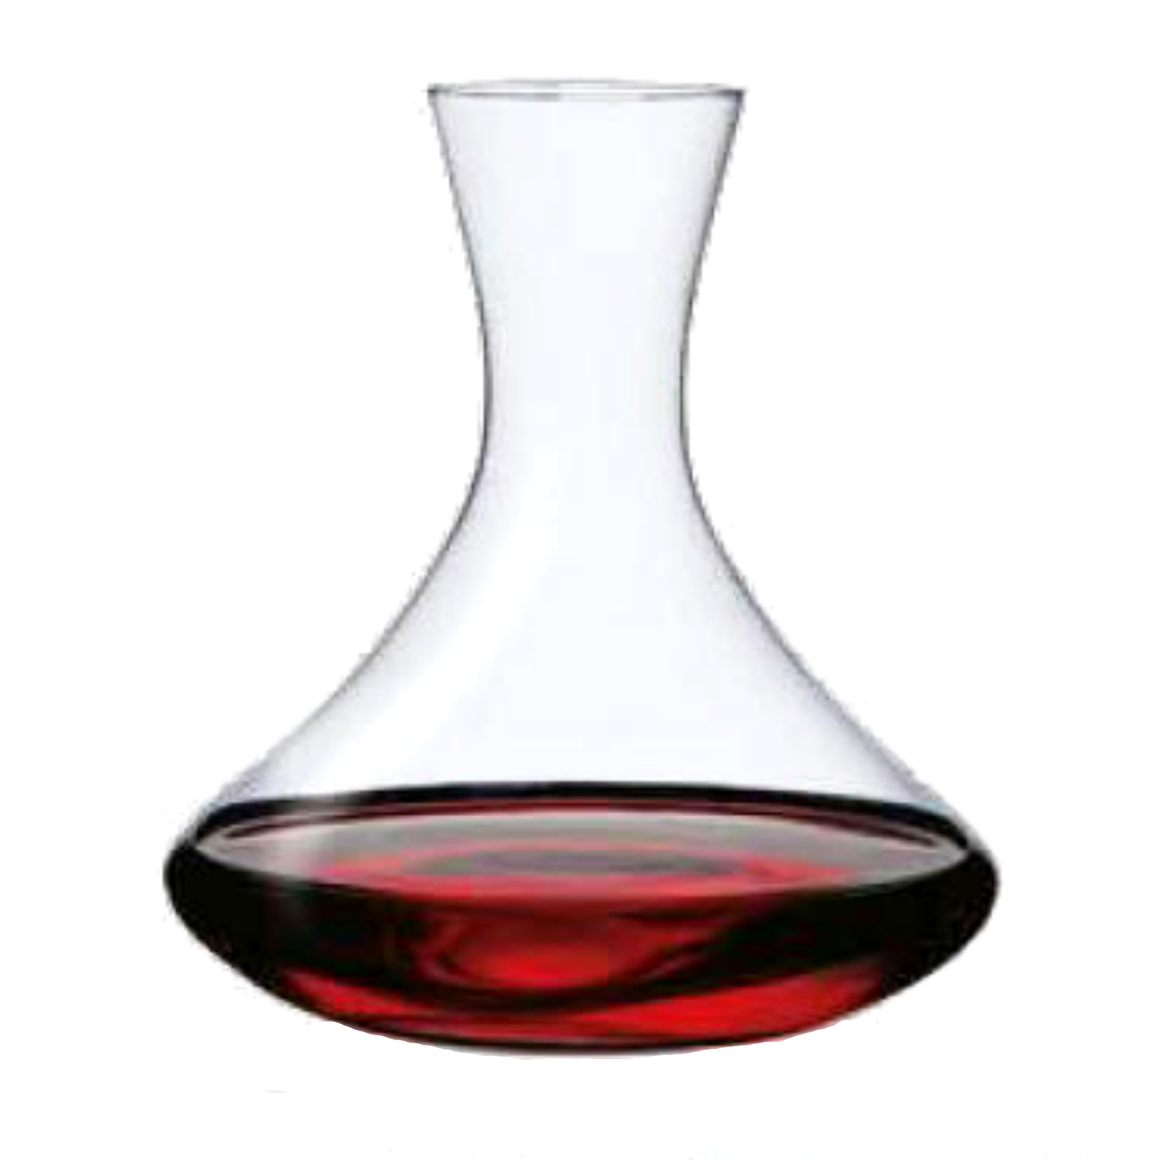 DECANTER WINE LEAD FREE CRYSTAL 1500ML / BOHEMIA CRYSTAL